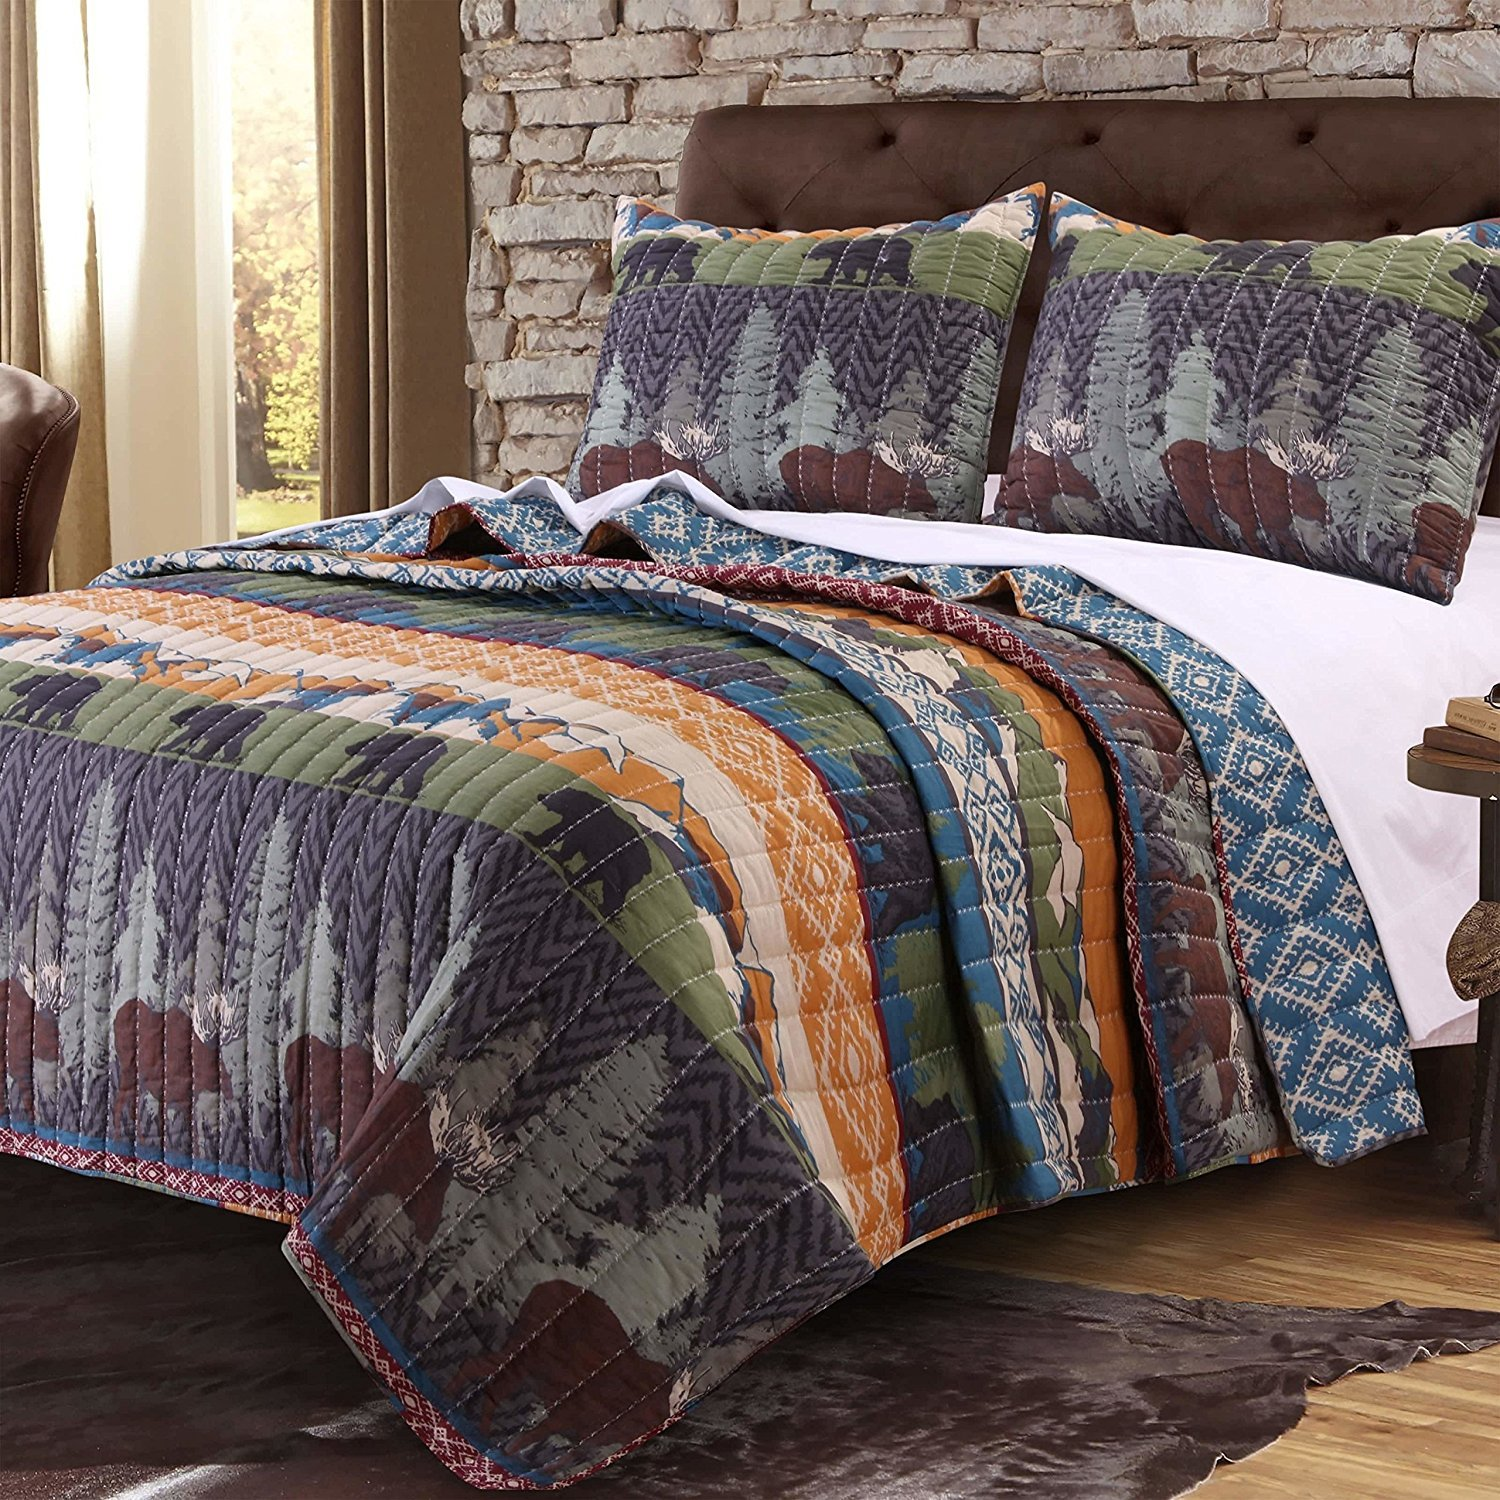 2pc Brown Lodge Theme Twin Quilt Set, Rustic Animal Hunting Country Southwest Pine Trees Cabin Bedding Woods Horizontal Stripes Medallion Geometric Pattern, Cotton Polyester